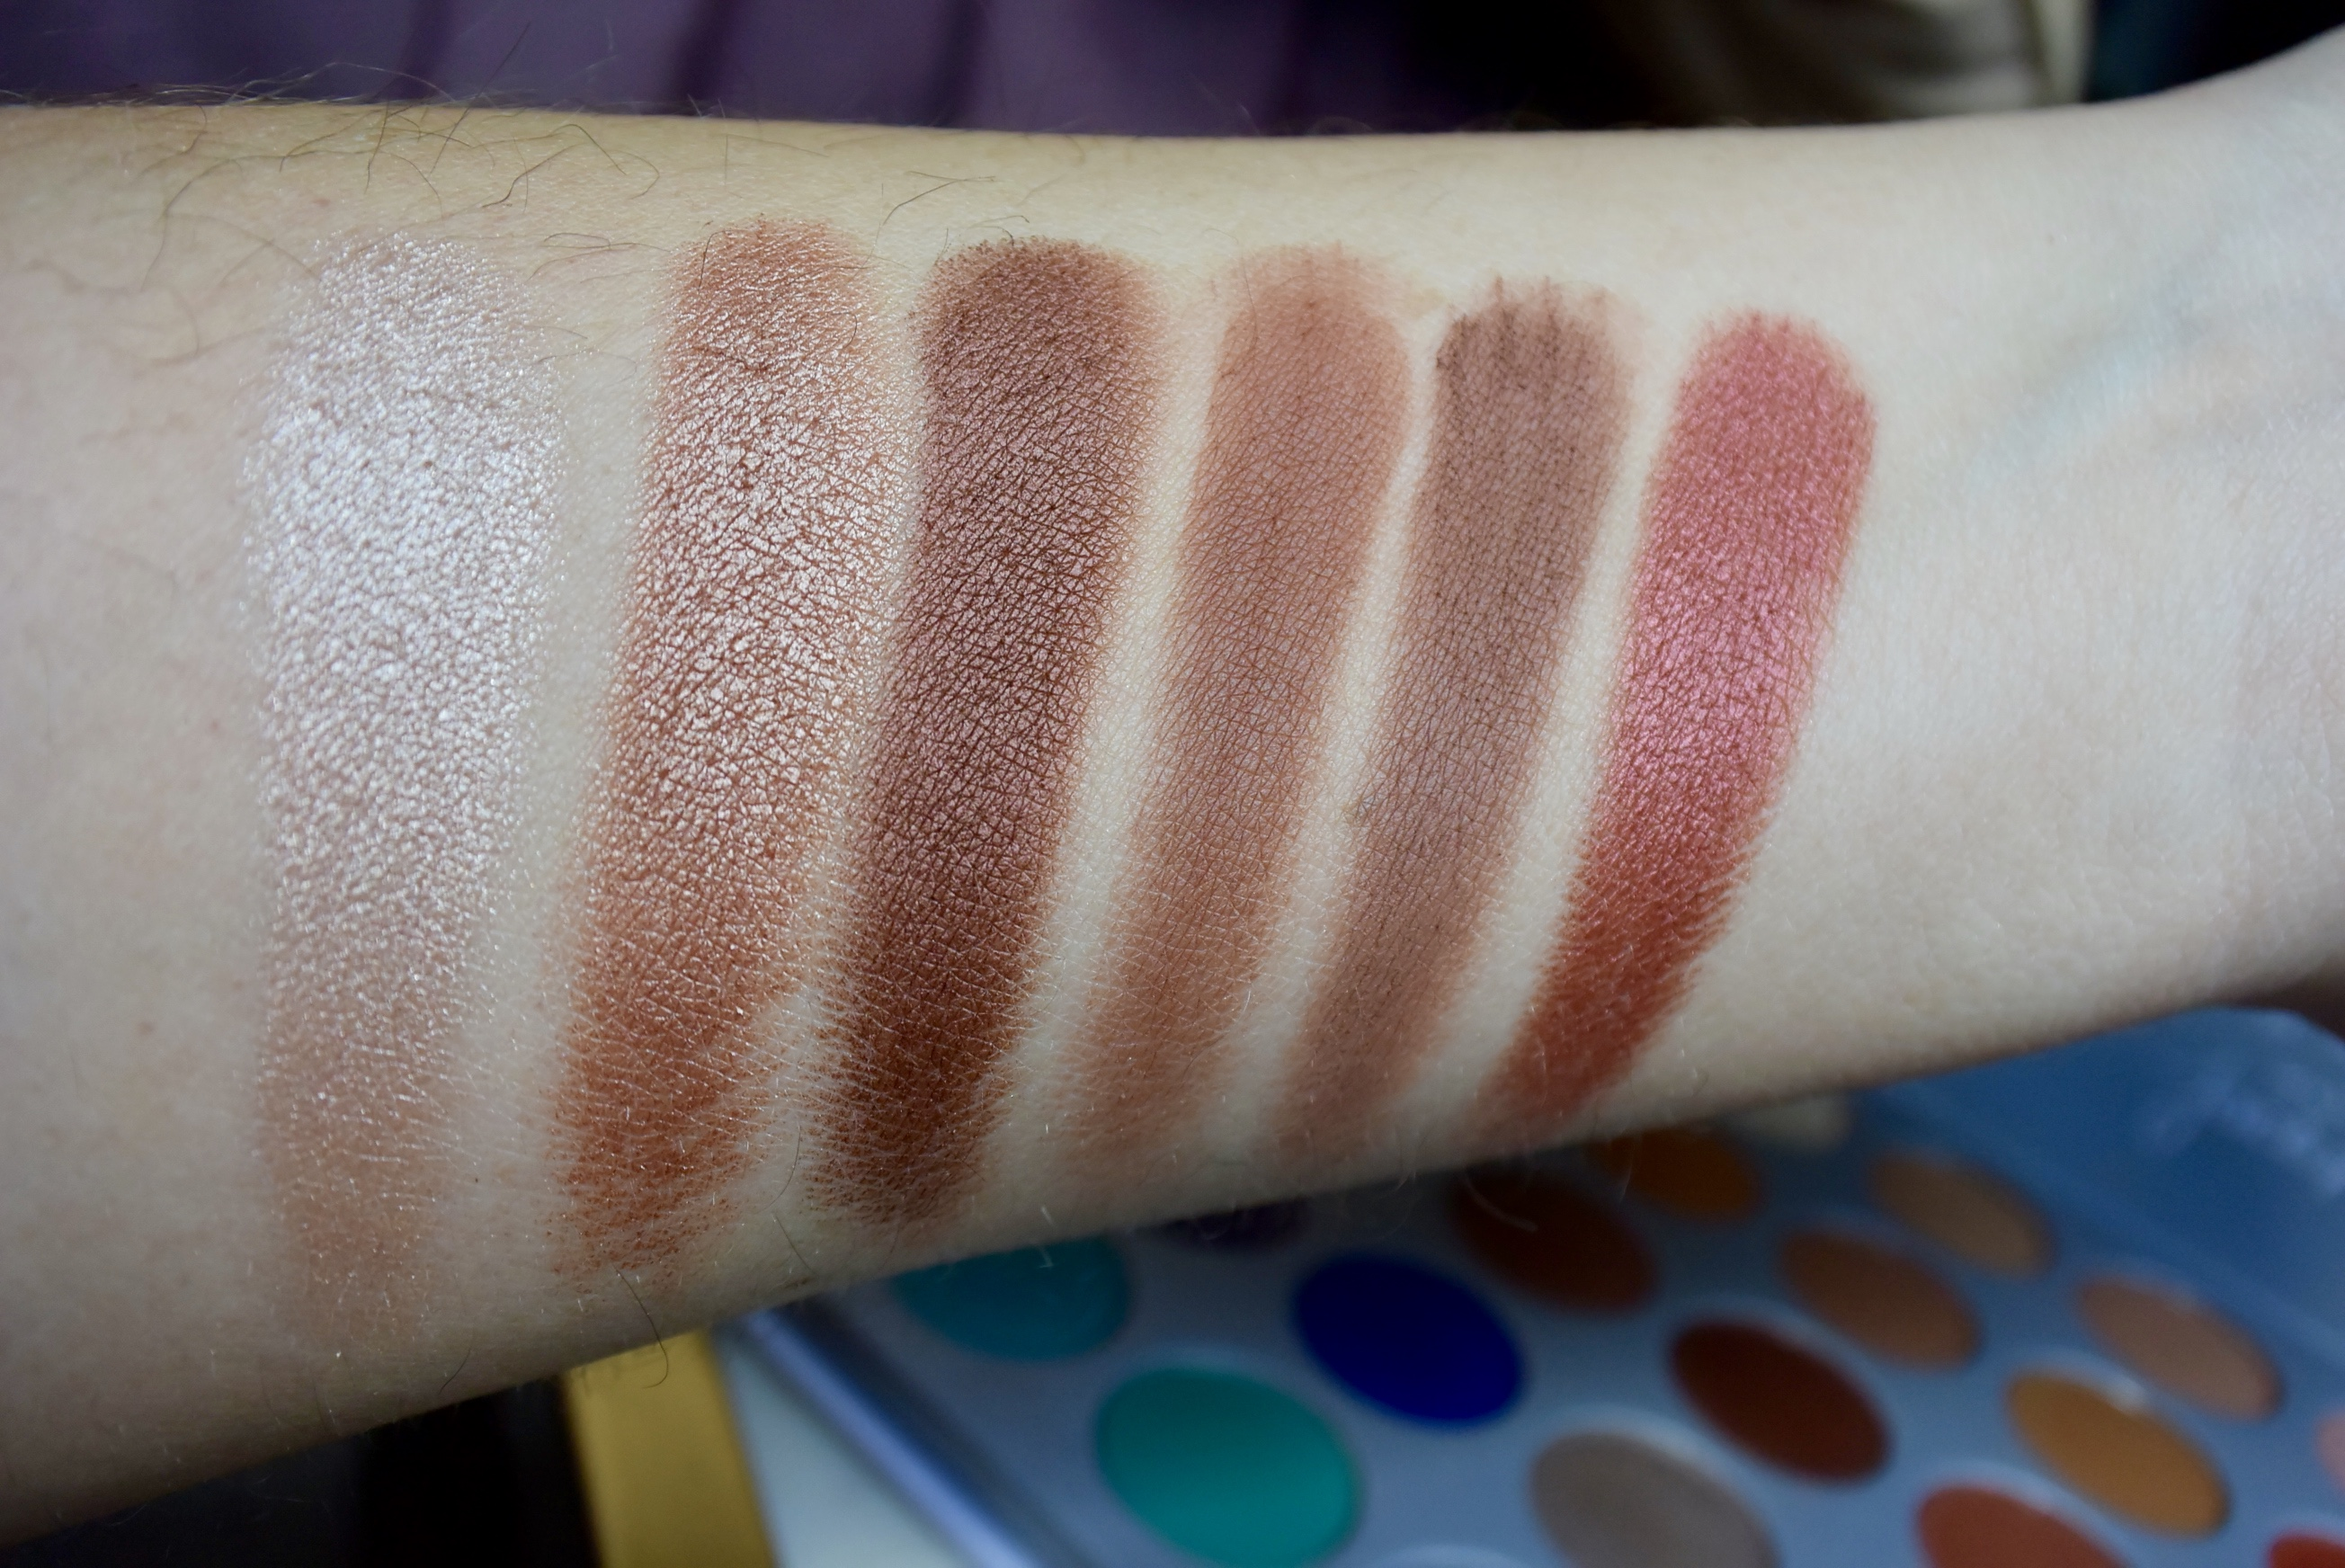 Jaclyn Hill Palette Review